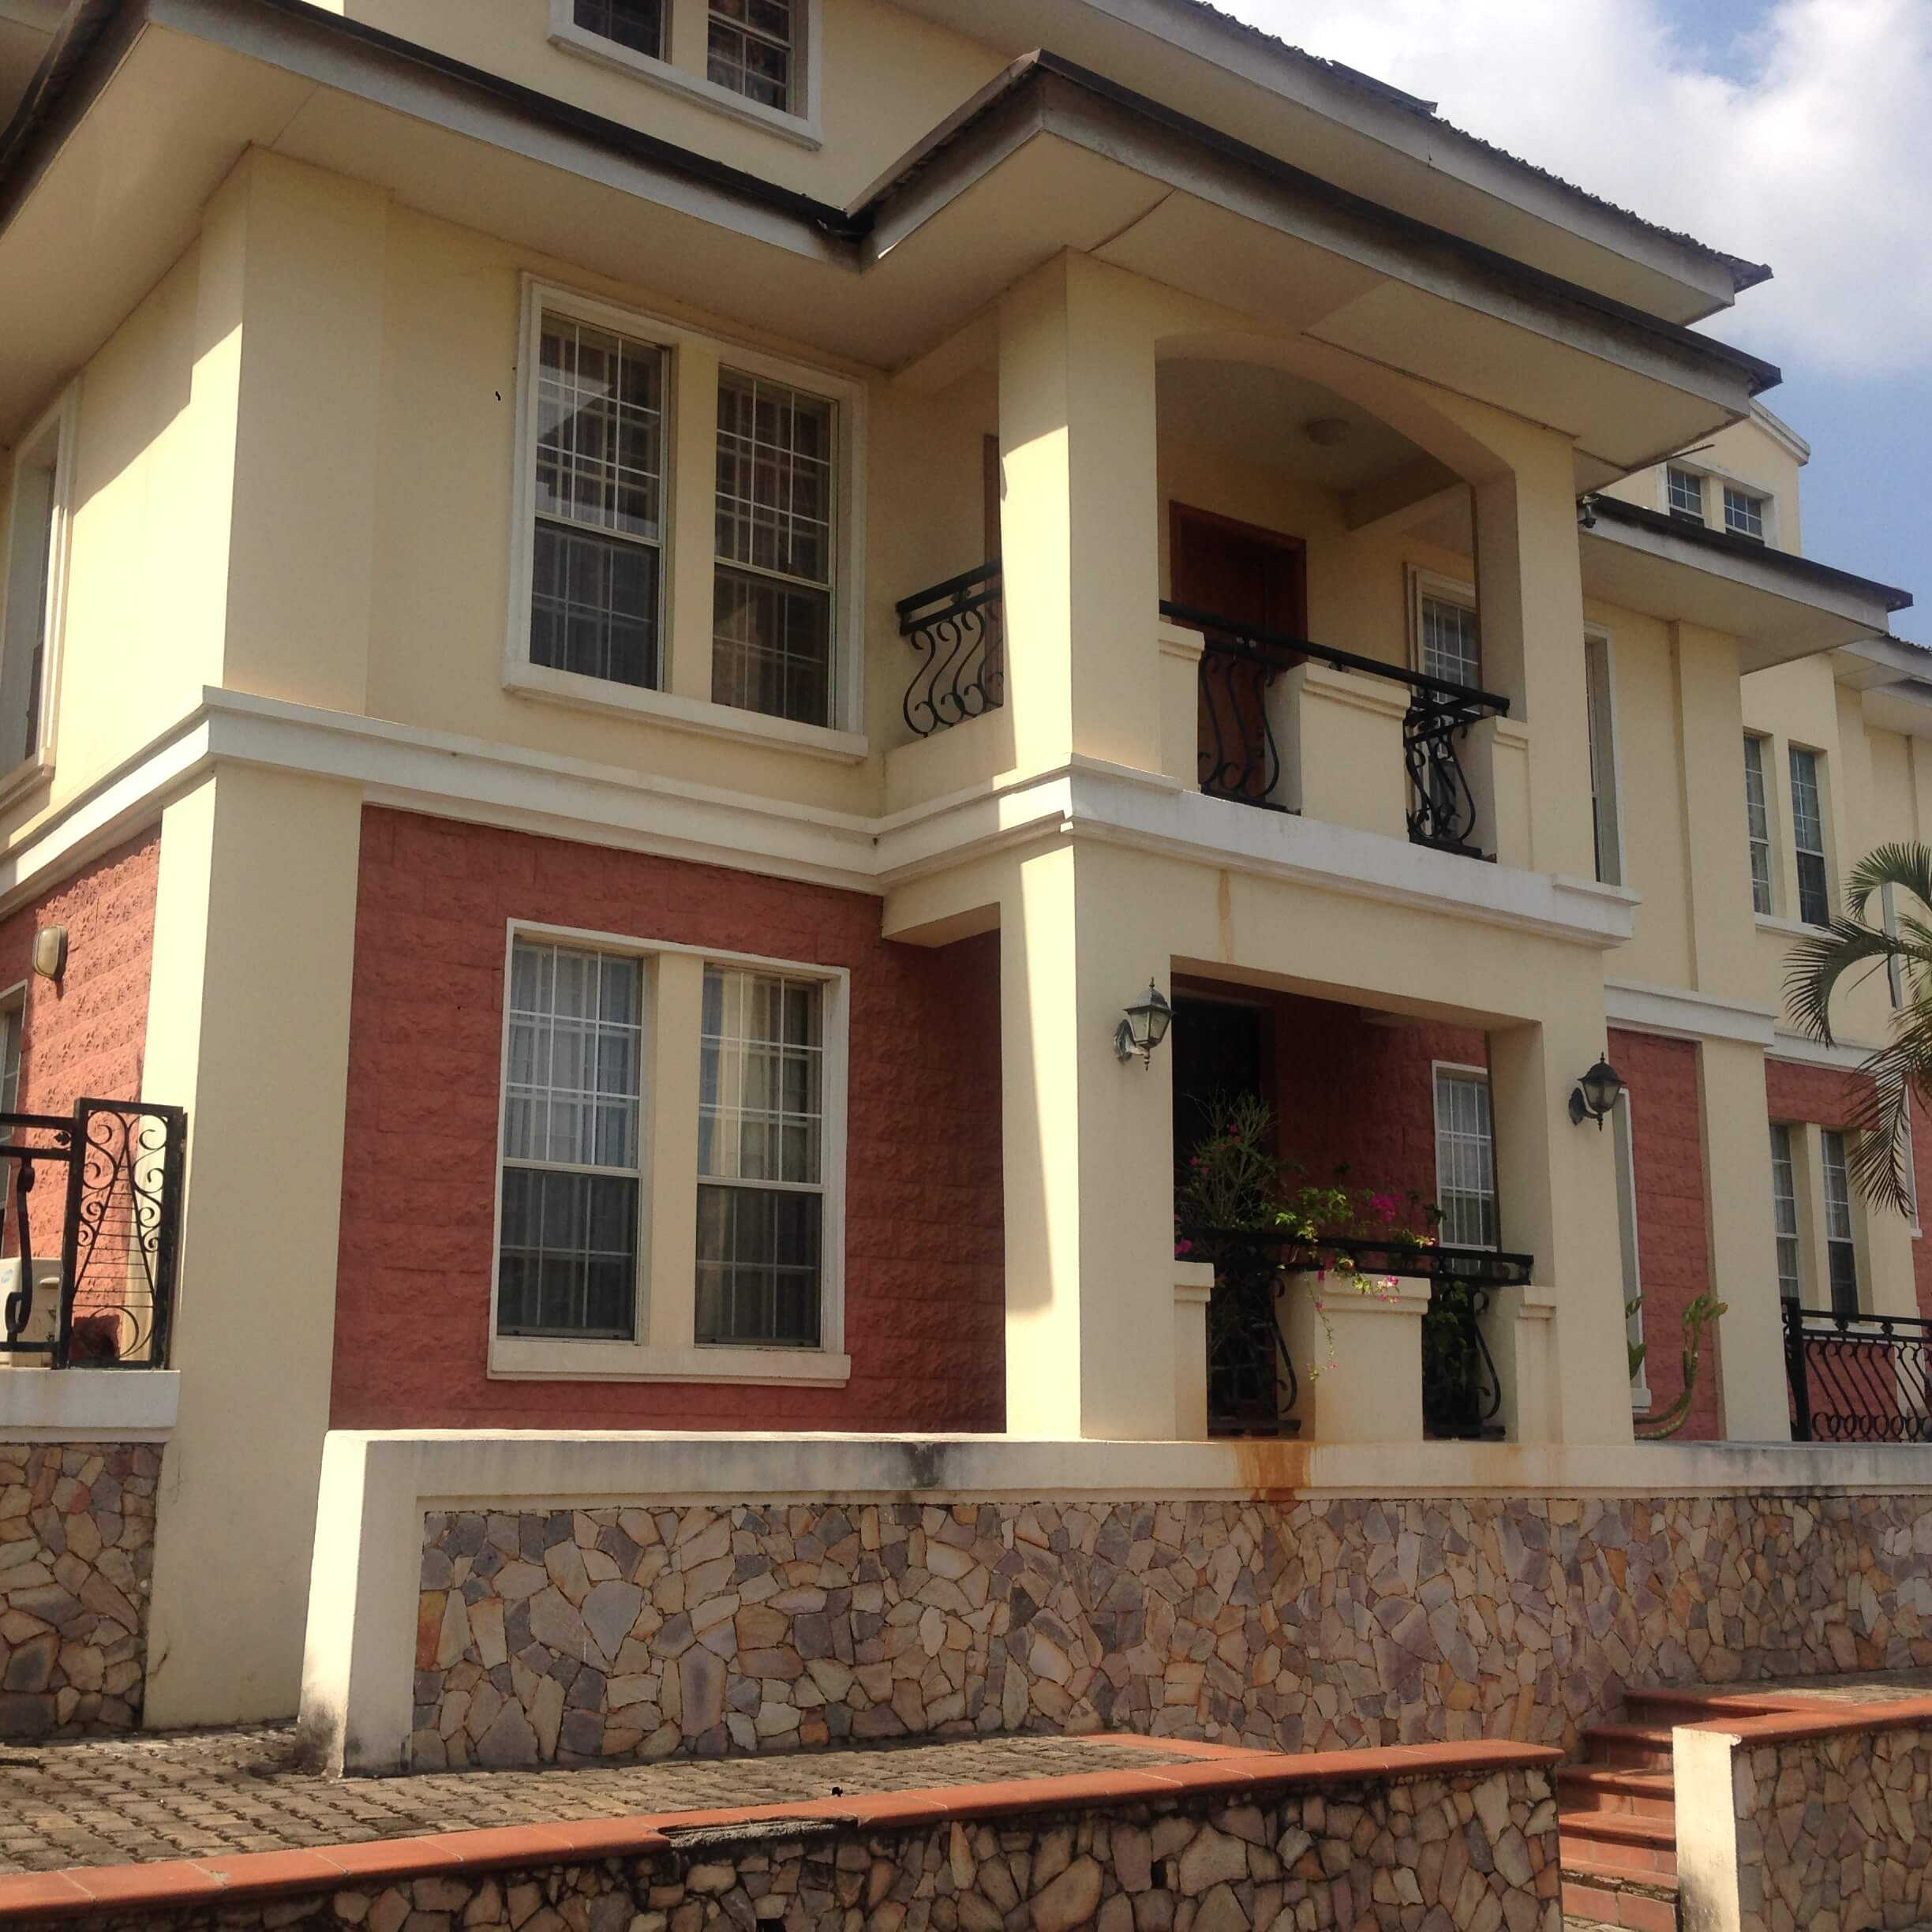 3 Bed Apartments For Rent: 3 Bedroom Apartment For Rent In Maitama